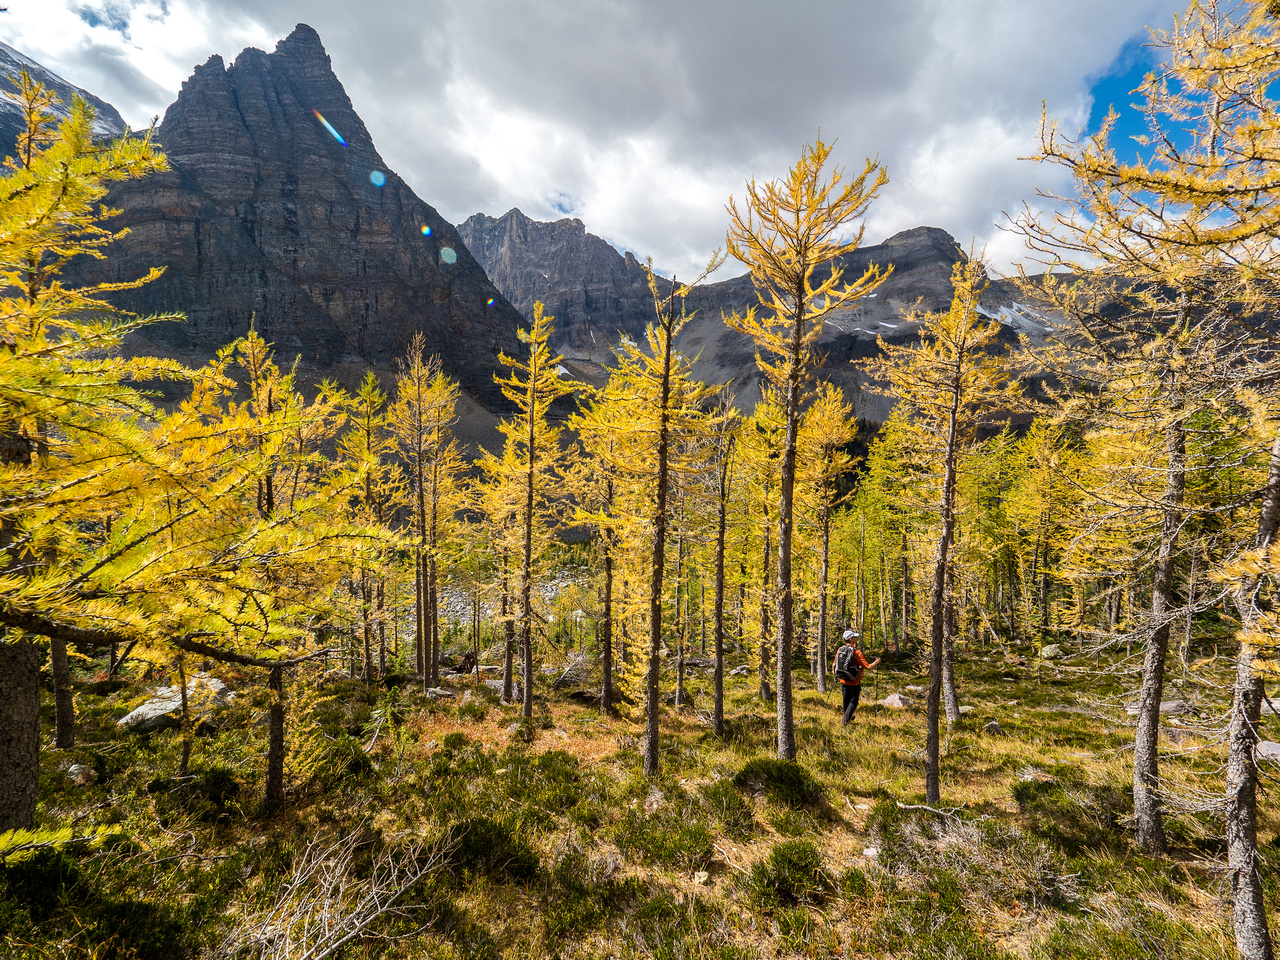 Some larches were nicely turned on the descent towards Haiduk Lake.